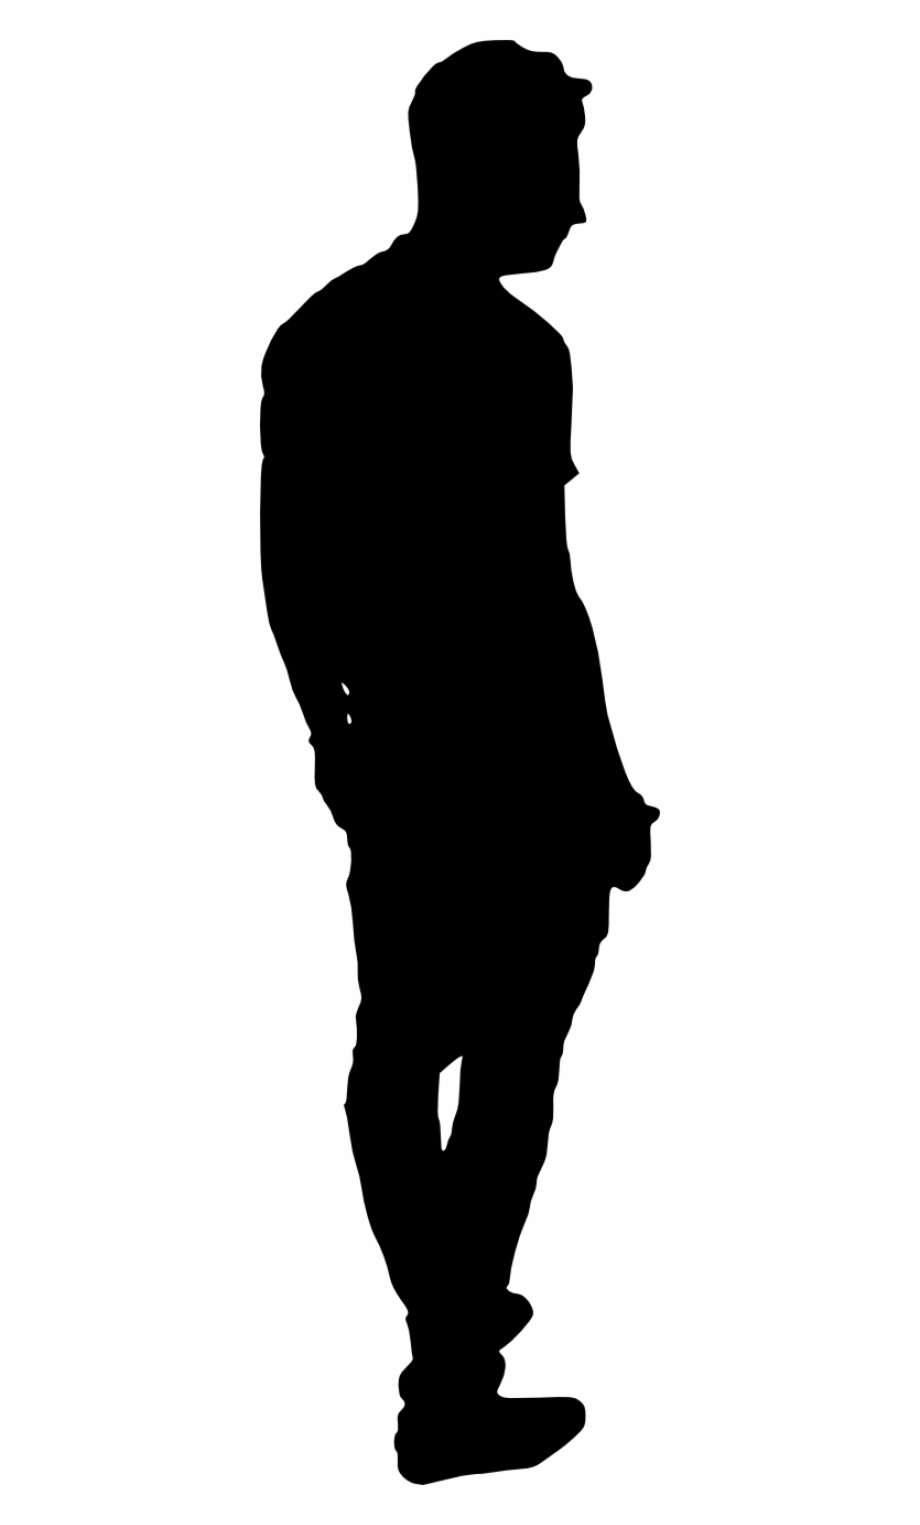 Erika Mustermann Silhouette Anonymity Anonymous Business.